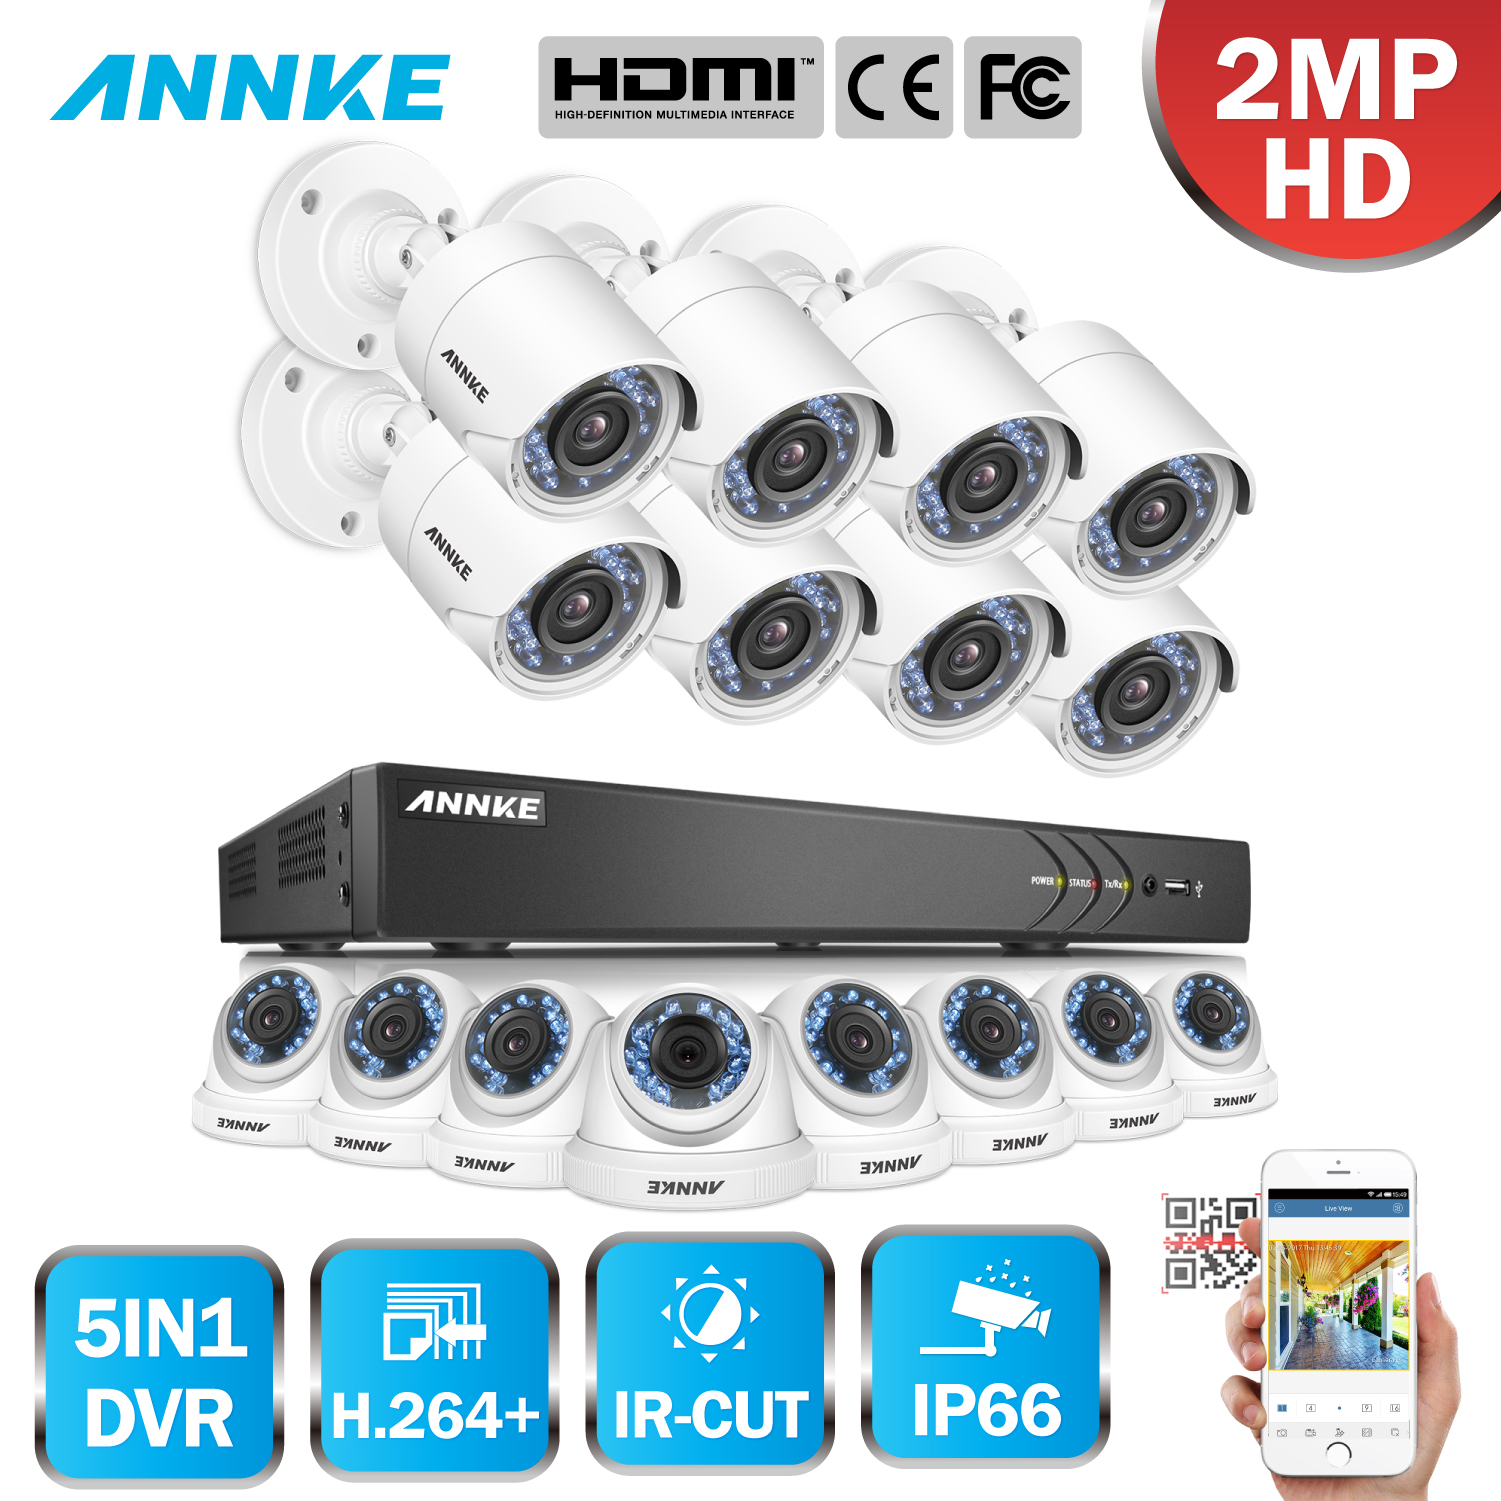 Iconnapp Us Blaster Products Car Audio Wiring Kits Usb 6128 Annke 1080p 16ch Fhd Tvi 5in1 3mp Dvr Vca 16pcs 2mp Hd Ir Day Night Vision Bullet Dome Cctv Camera Video Security System